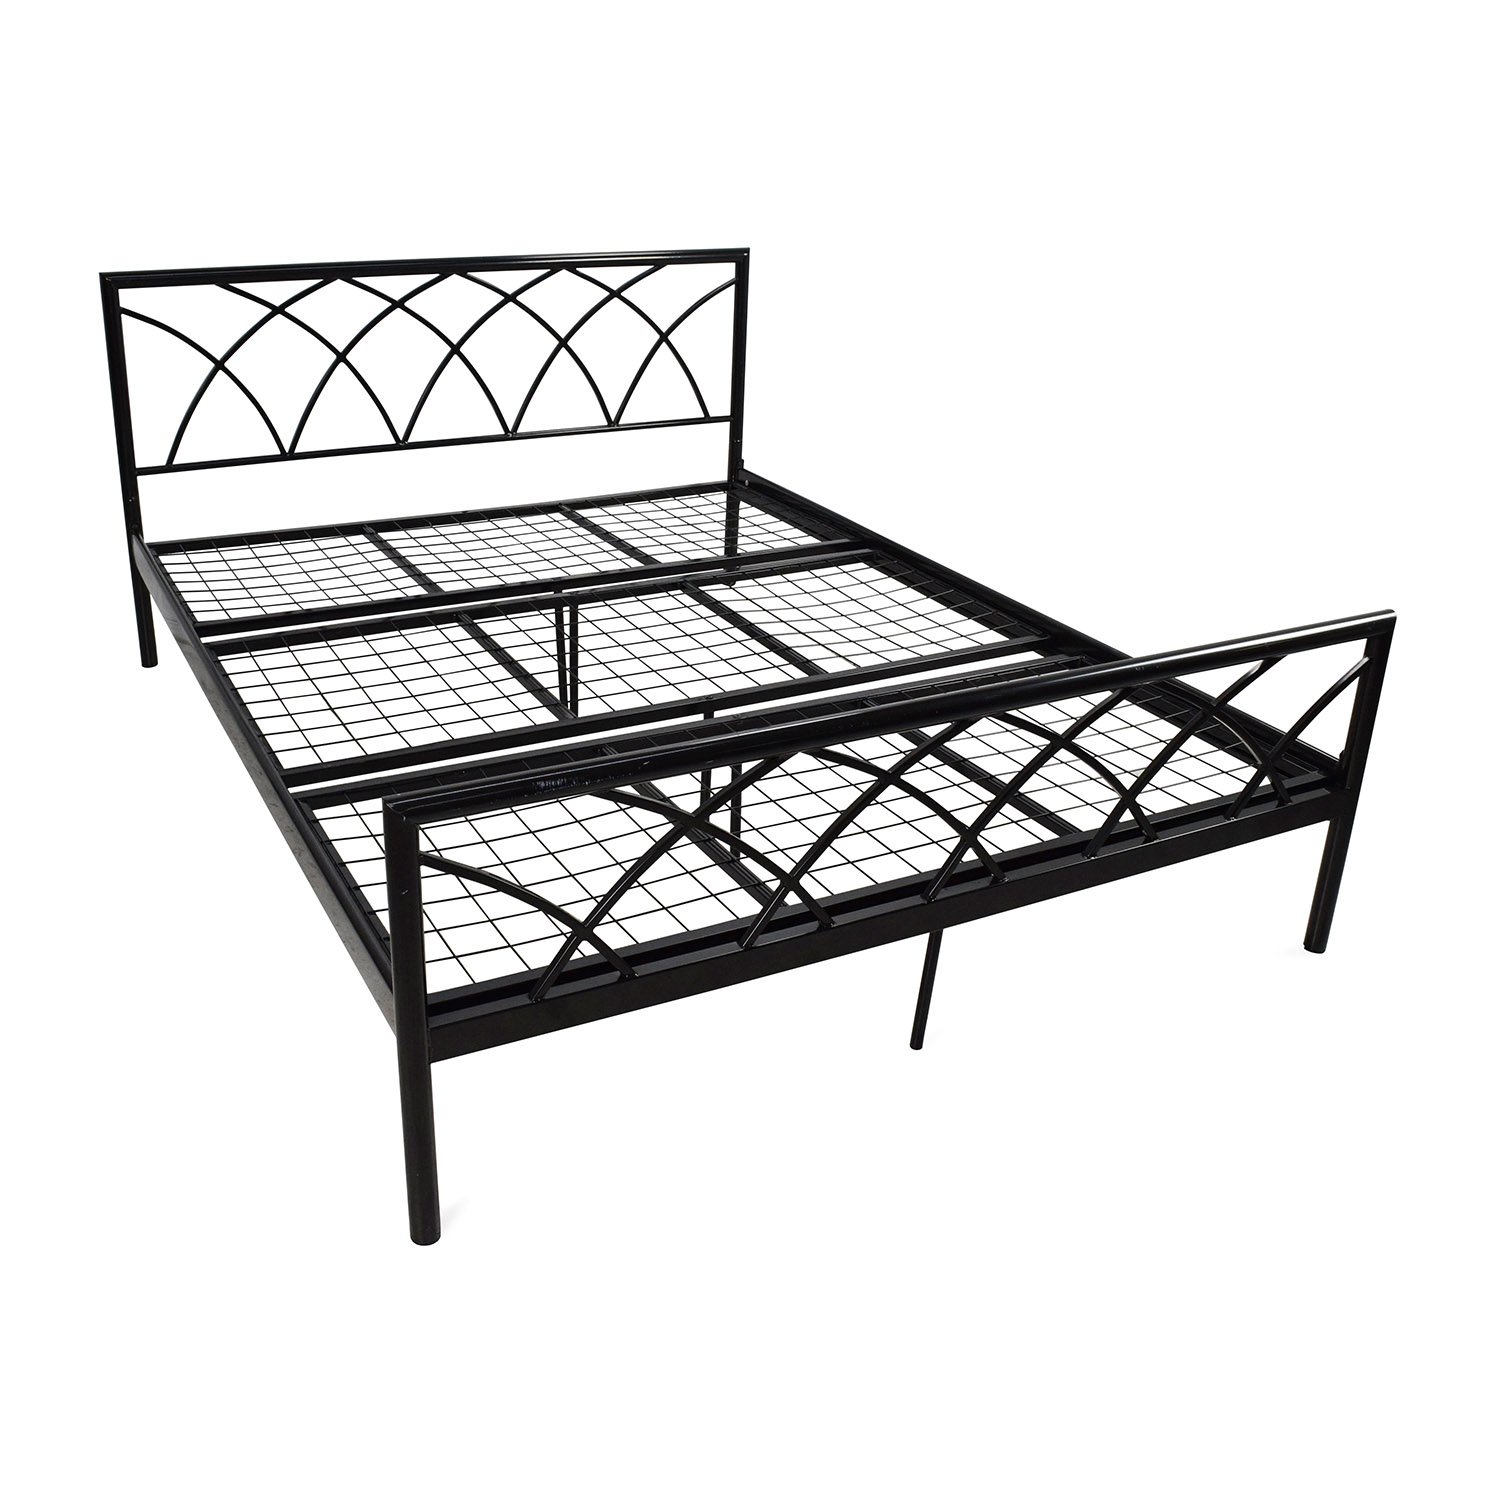 75 off overstock queen size metal bed frame beds for Queen bed frame